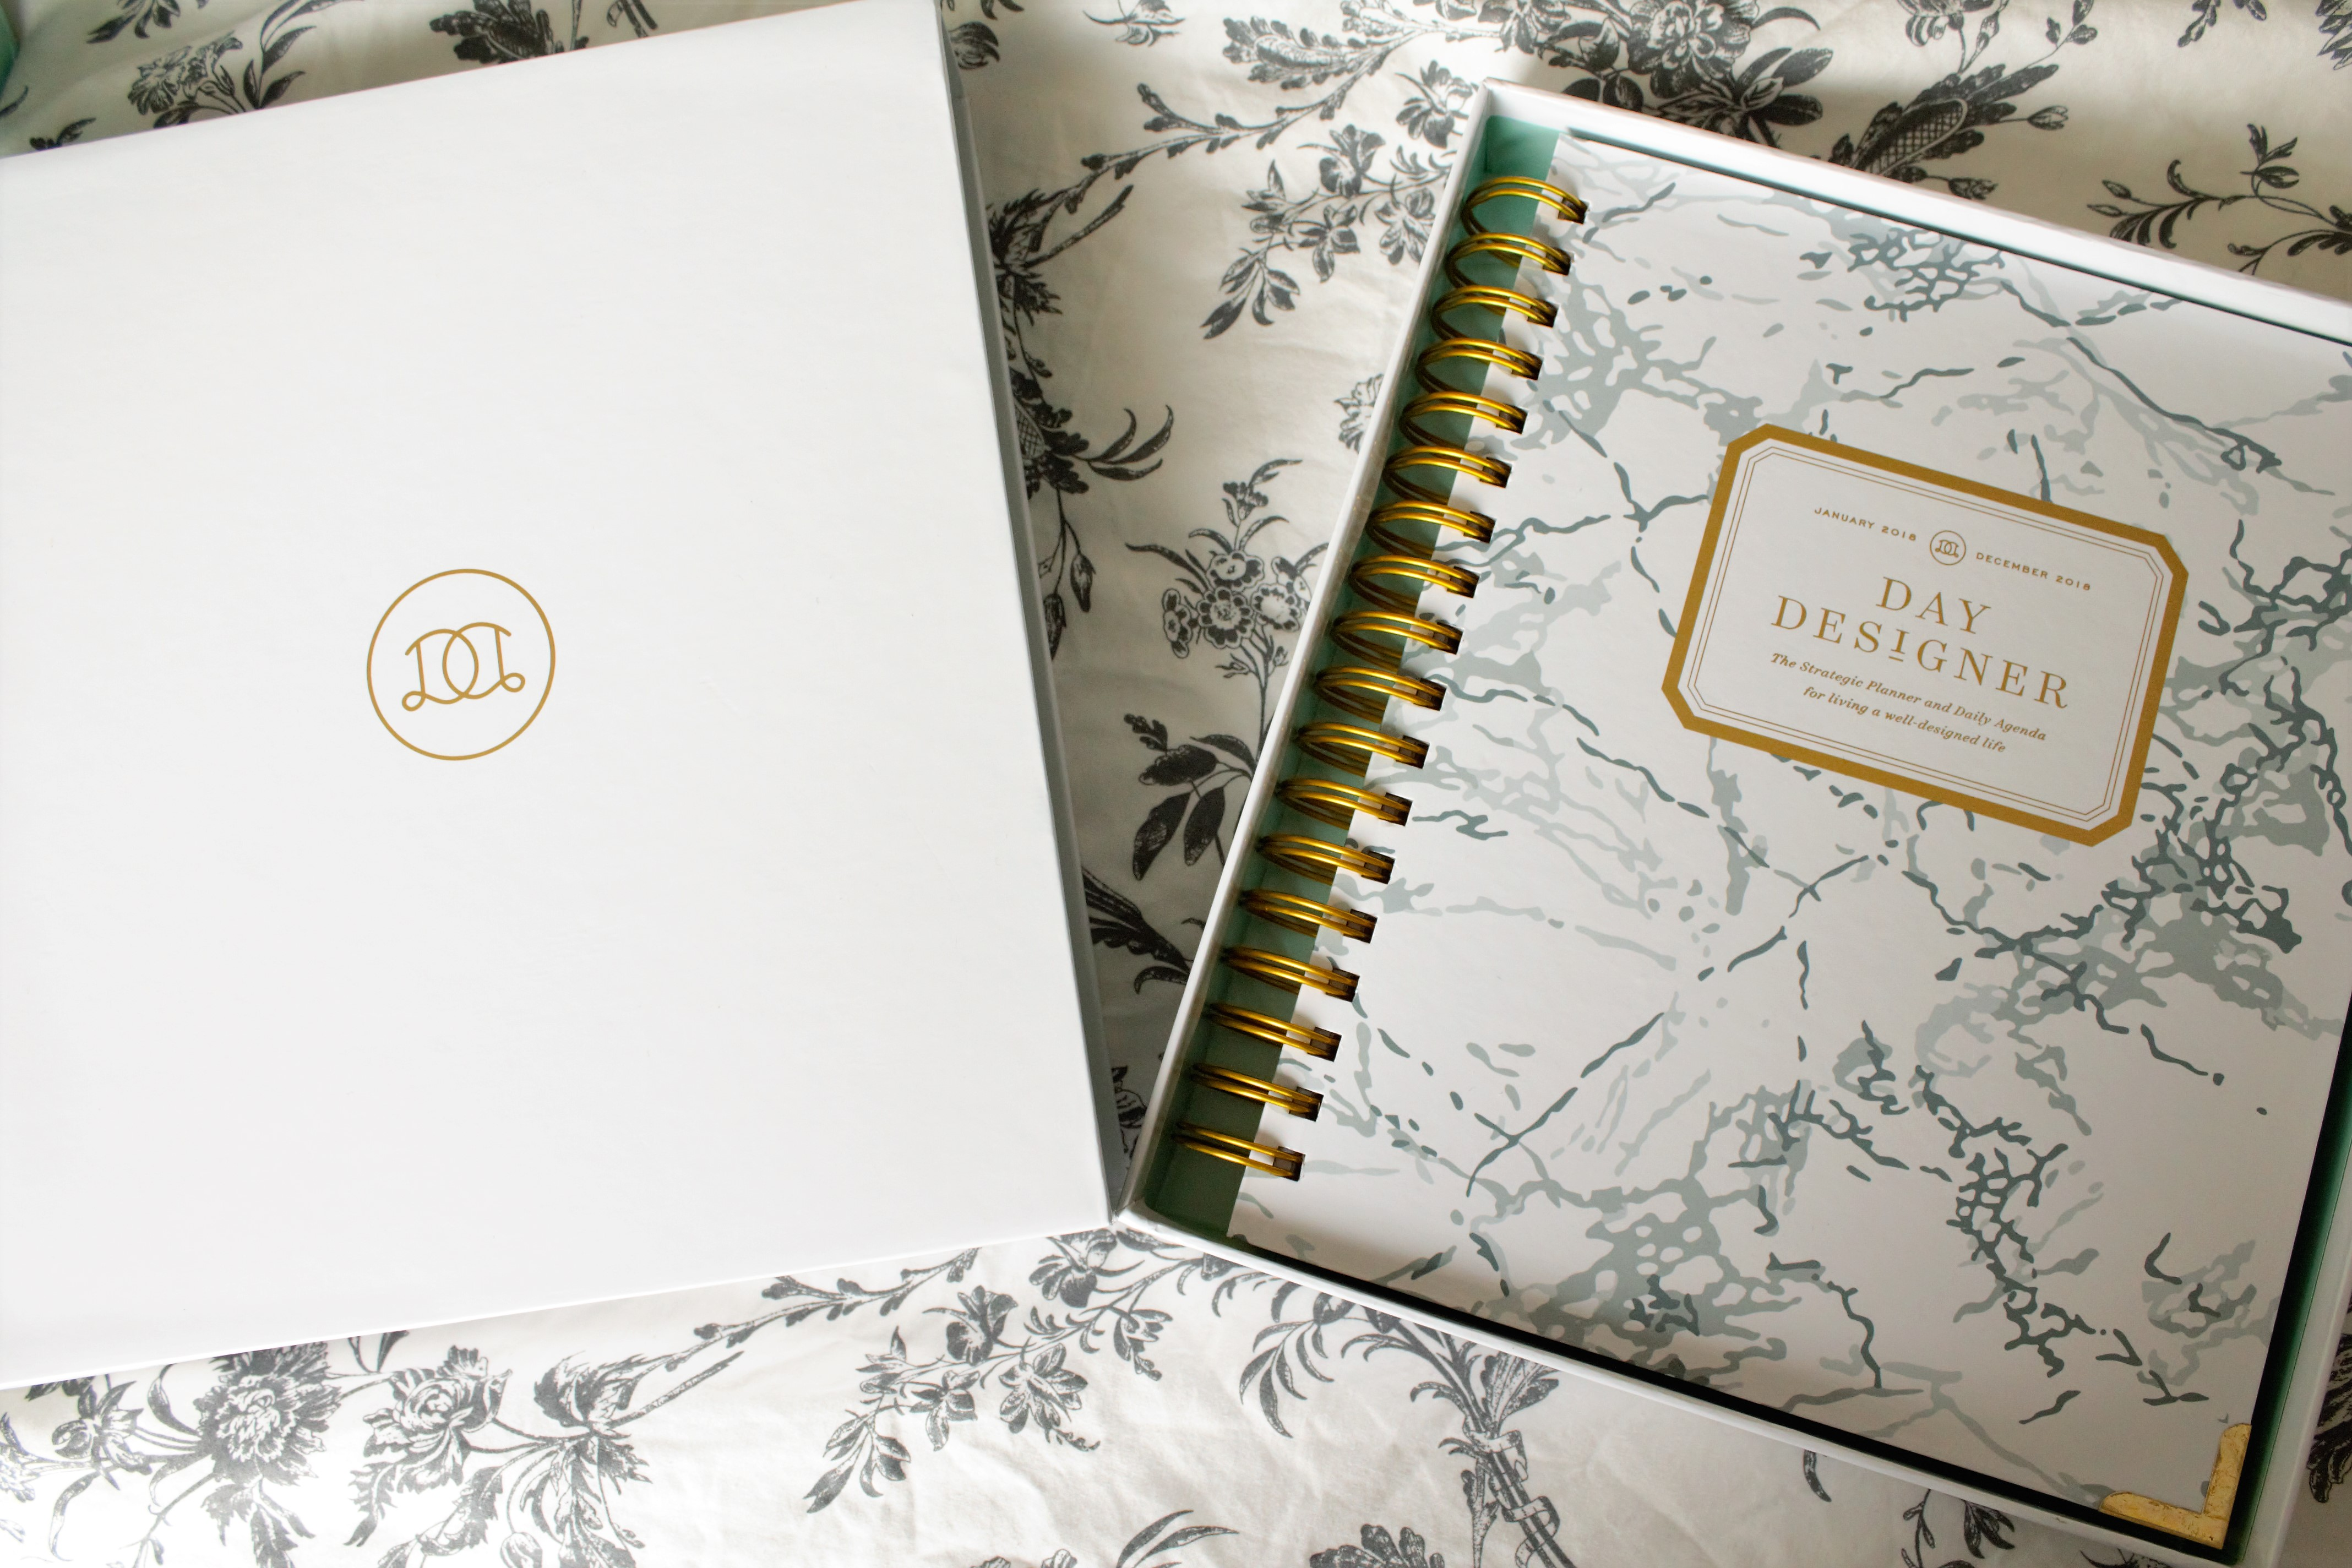 photograph regarding The Day Designer referred to as The Working day Designer 2018 Flagship Planner PLANNERISMA